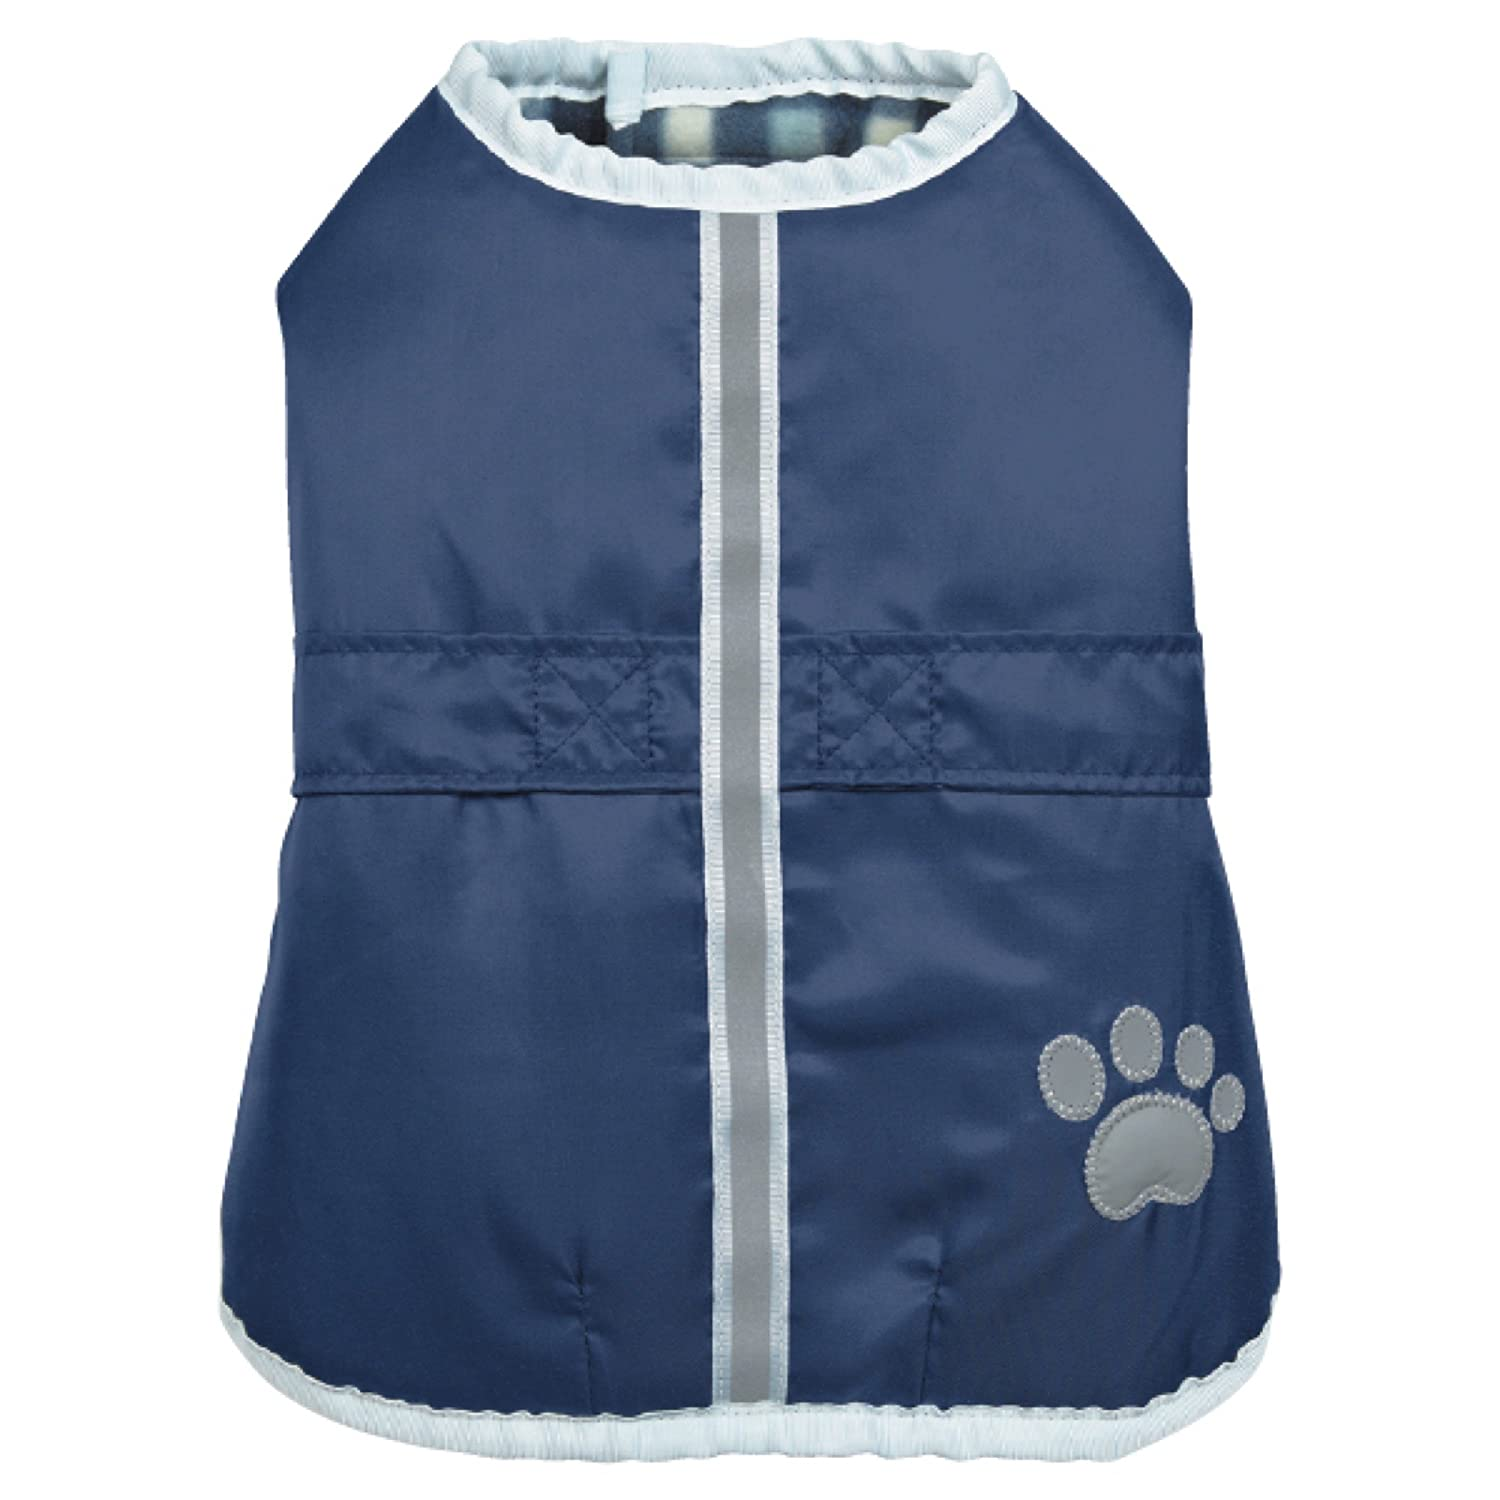 Navy X-Large Navy X-Large Zack & Zoey Thermapet Nor'easter Coat, Navy, X-Large